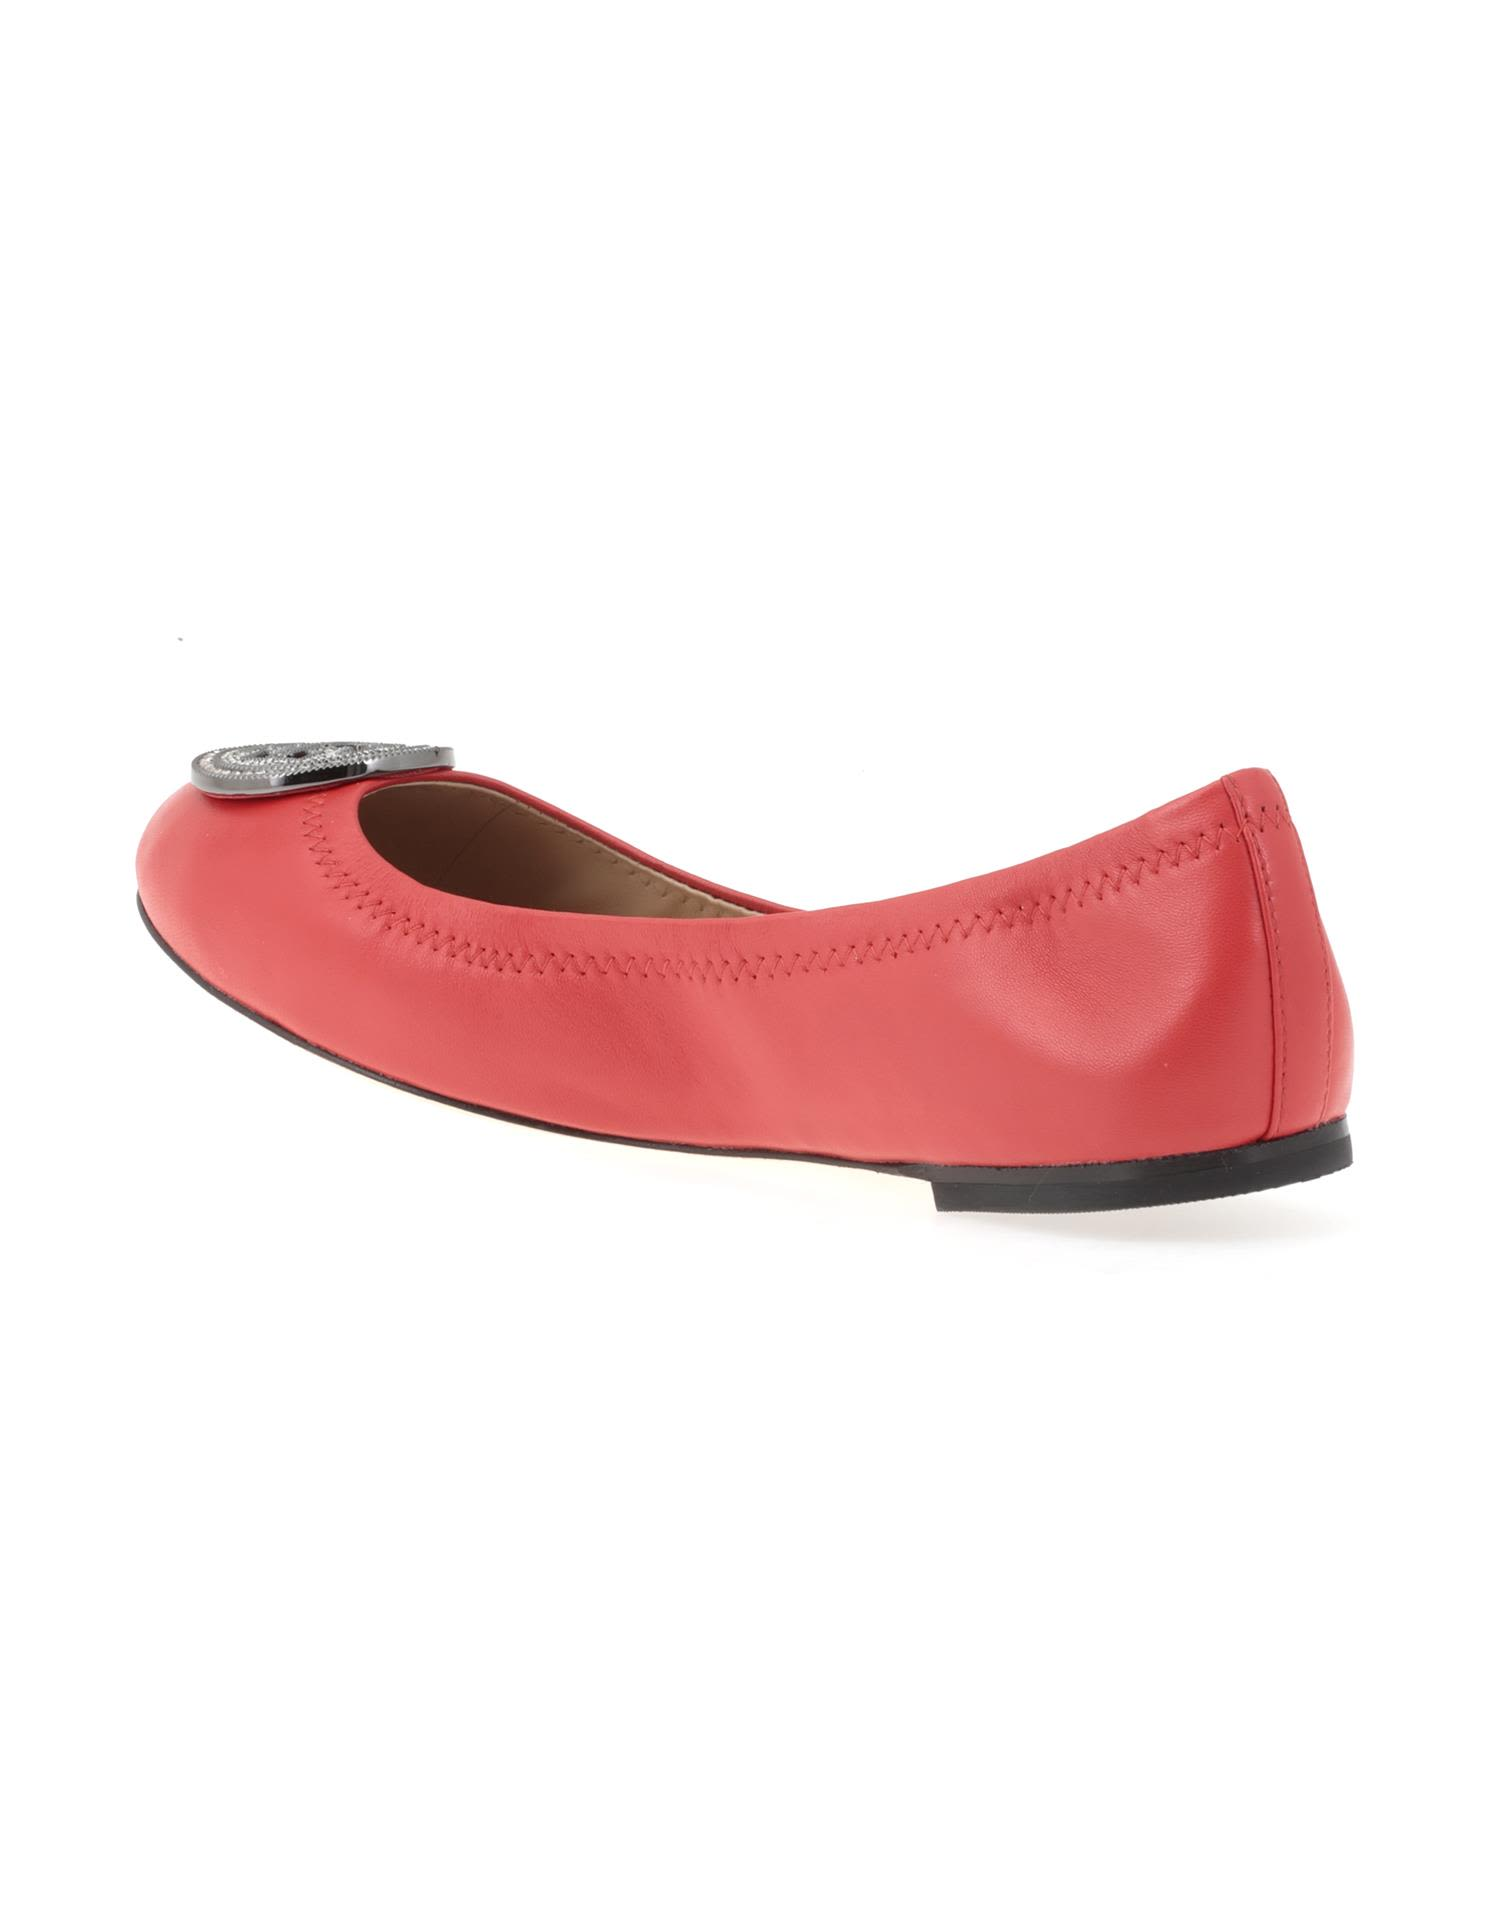 Tory Burch Designer Shoes, Liana Exotic Leather Ballet Flats